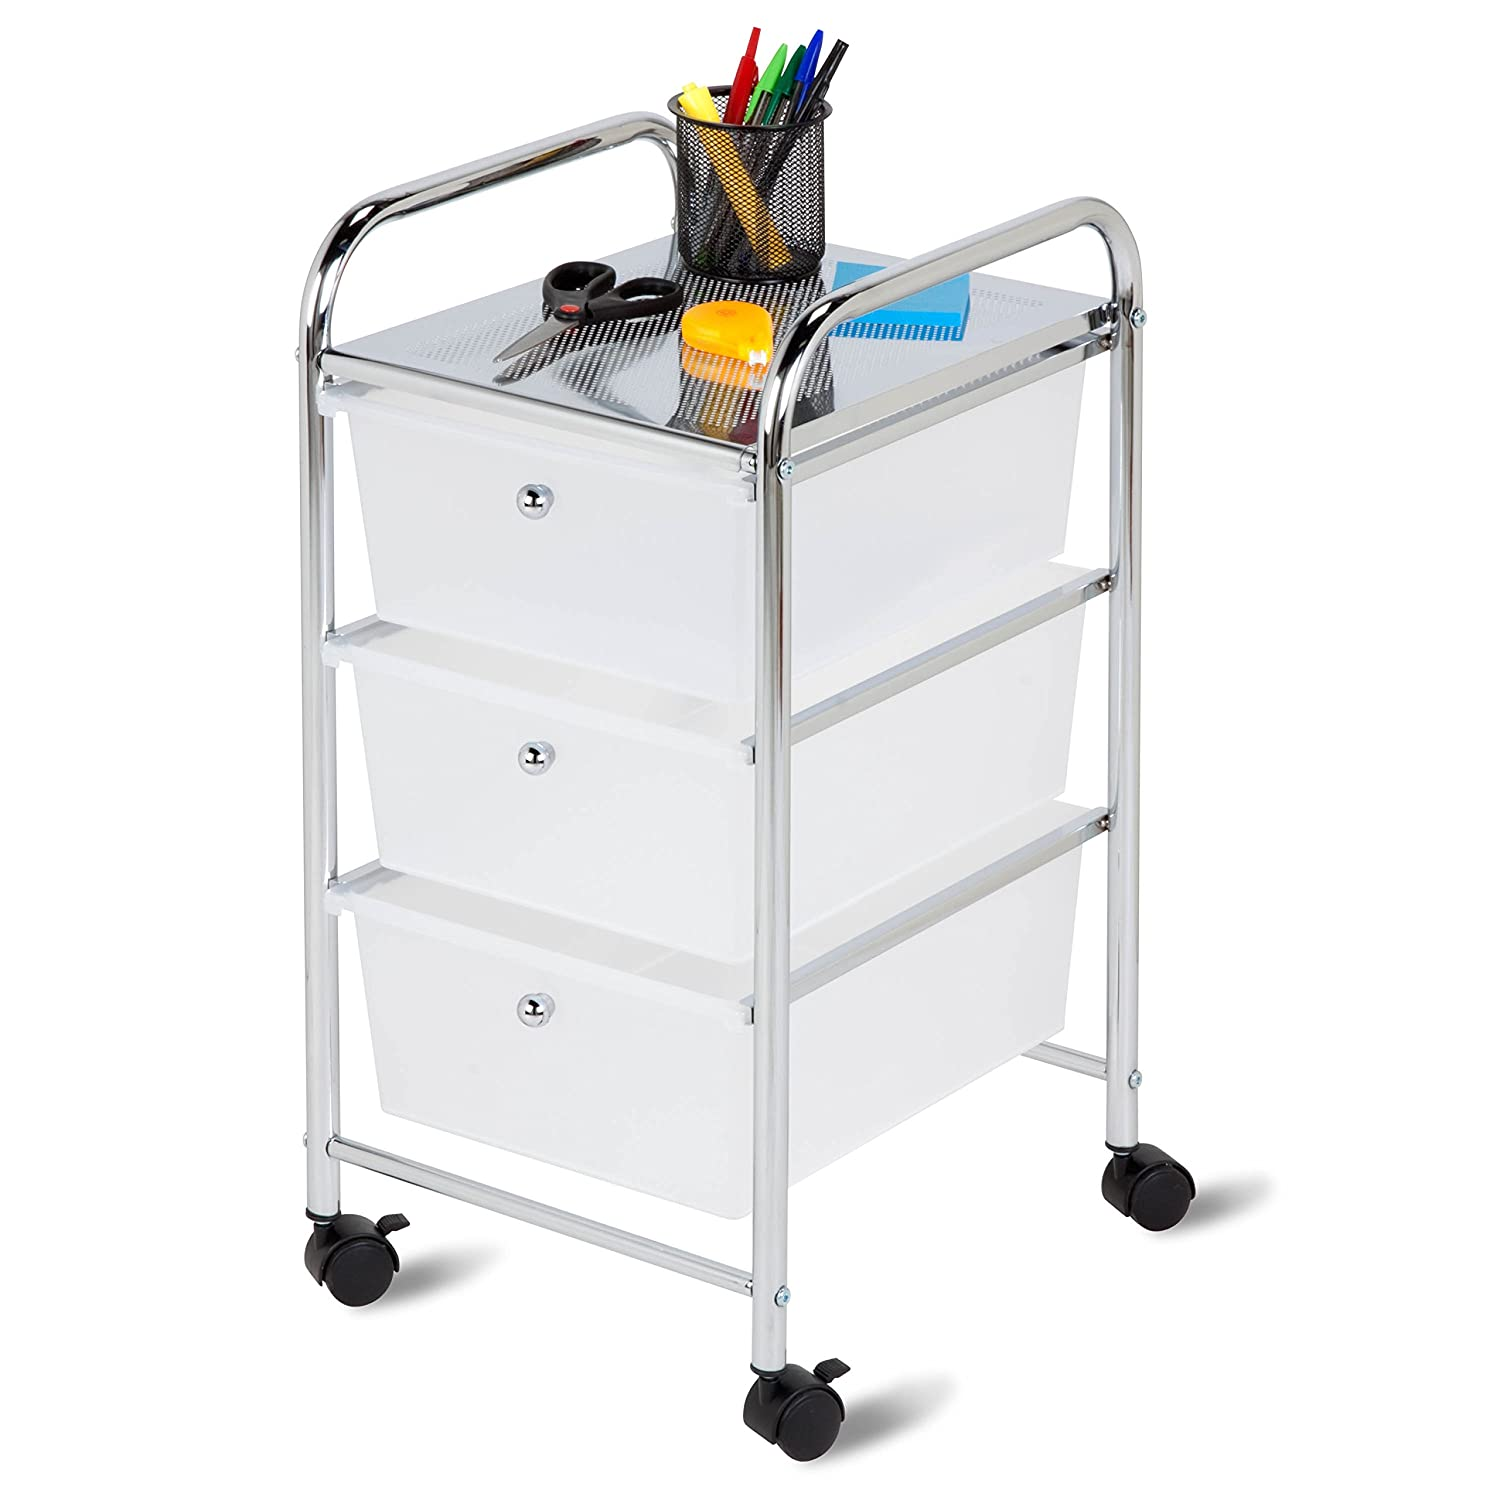 Honey-Can-Do CRT-02215 Rolling Cart with 3 Drawers